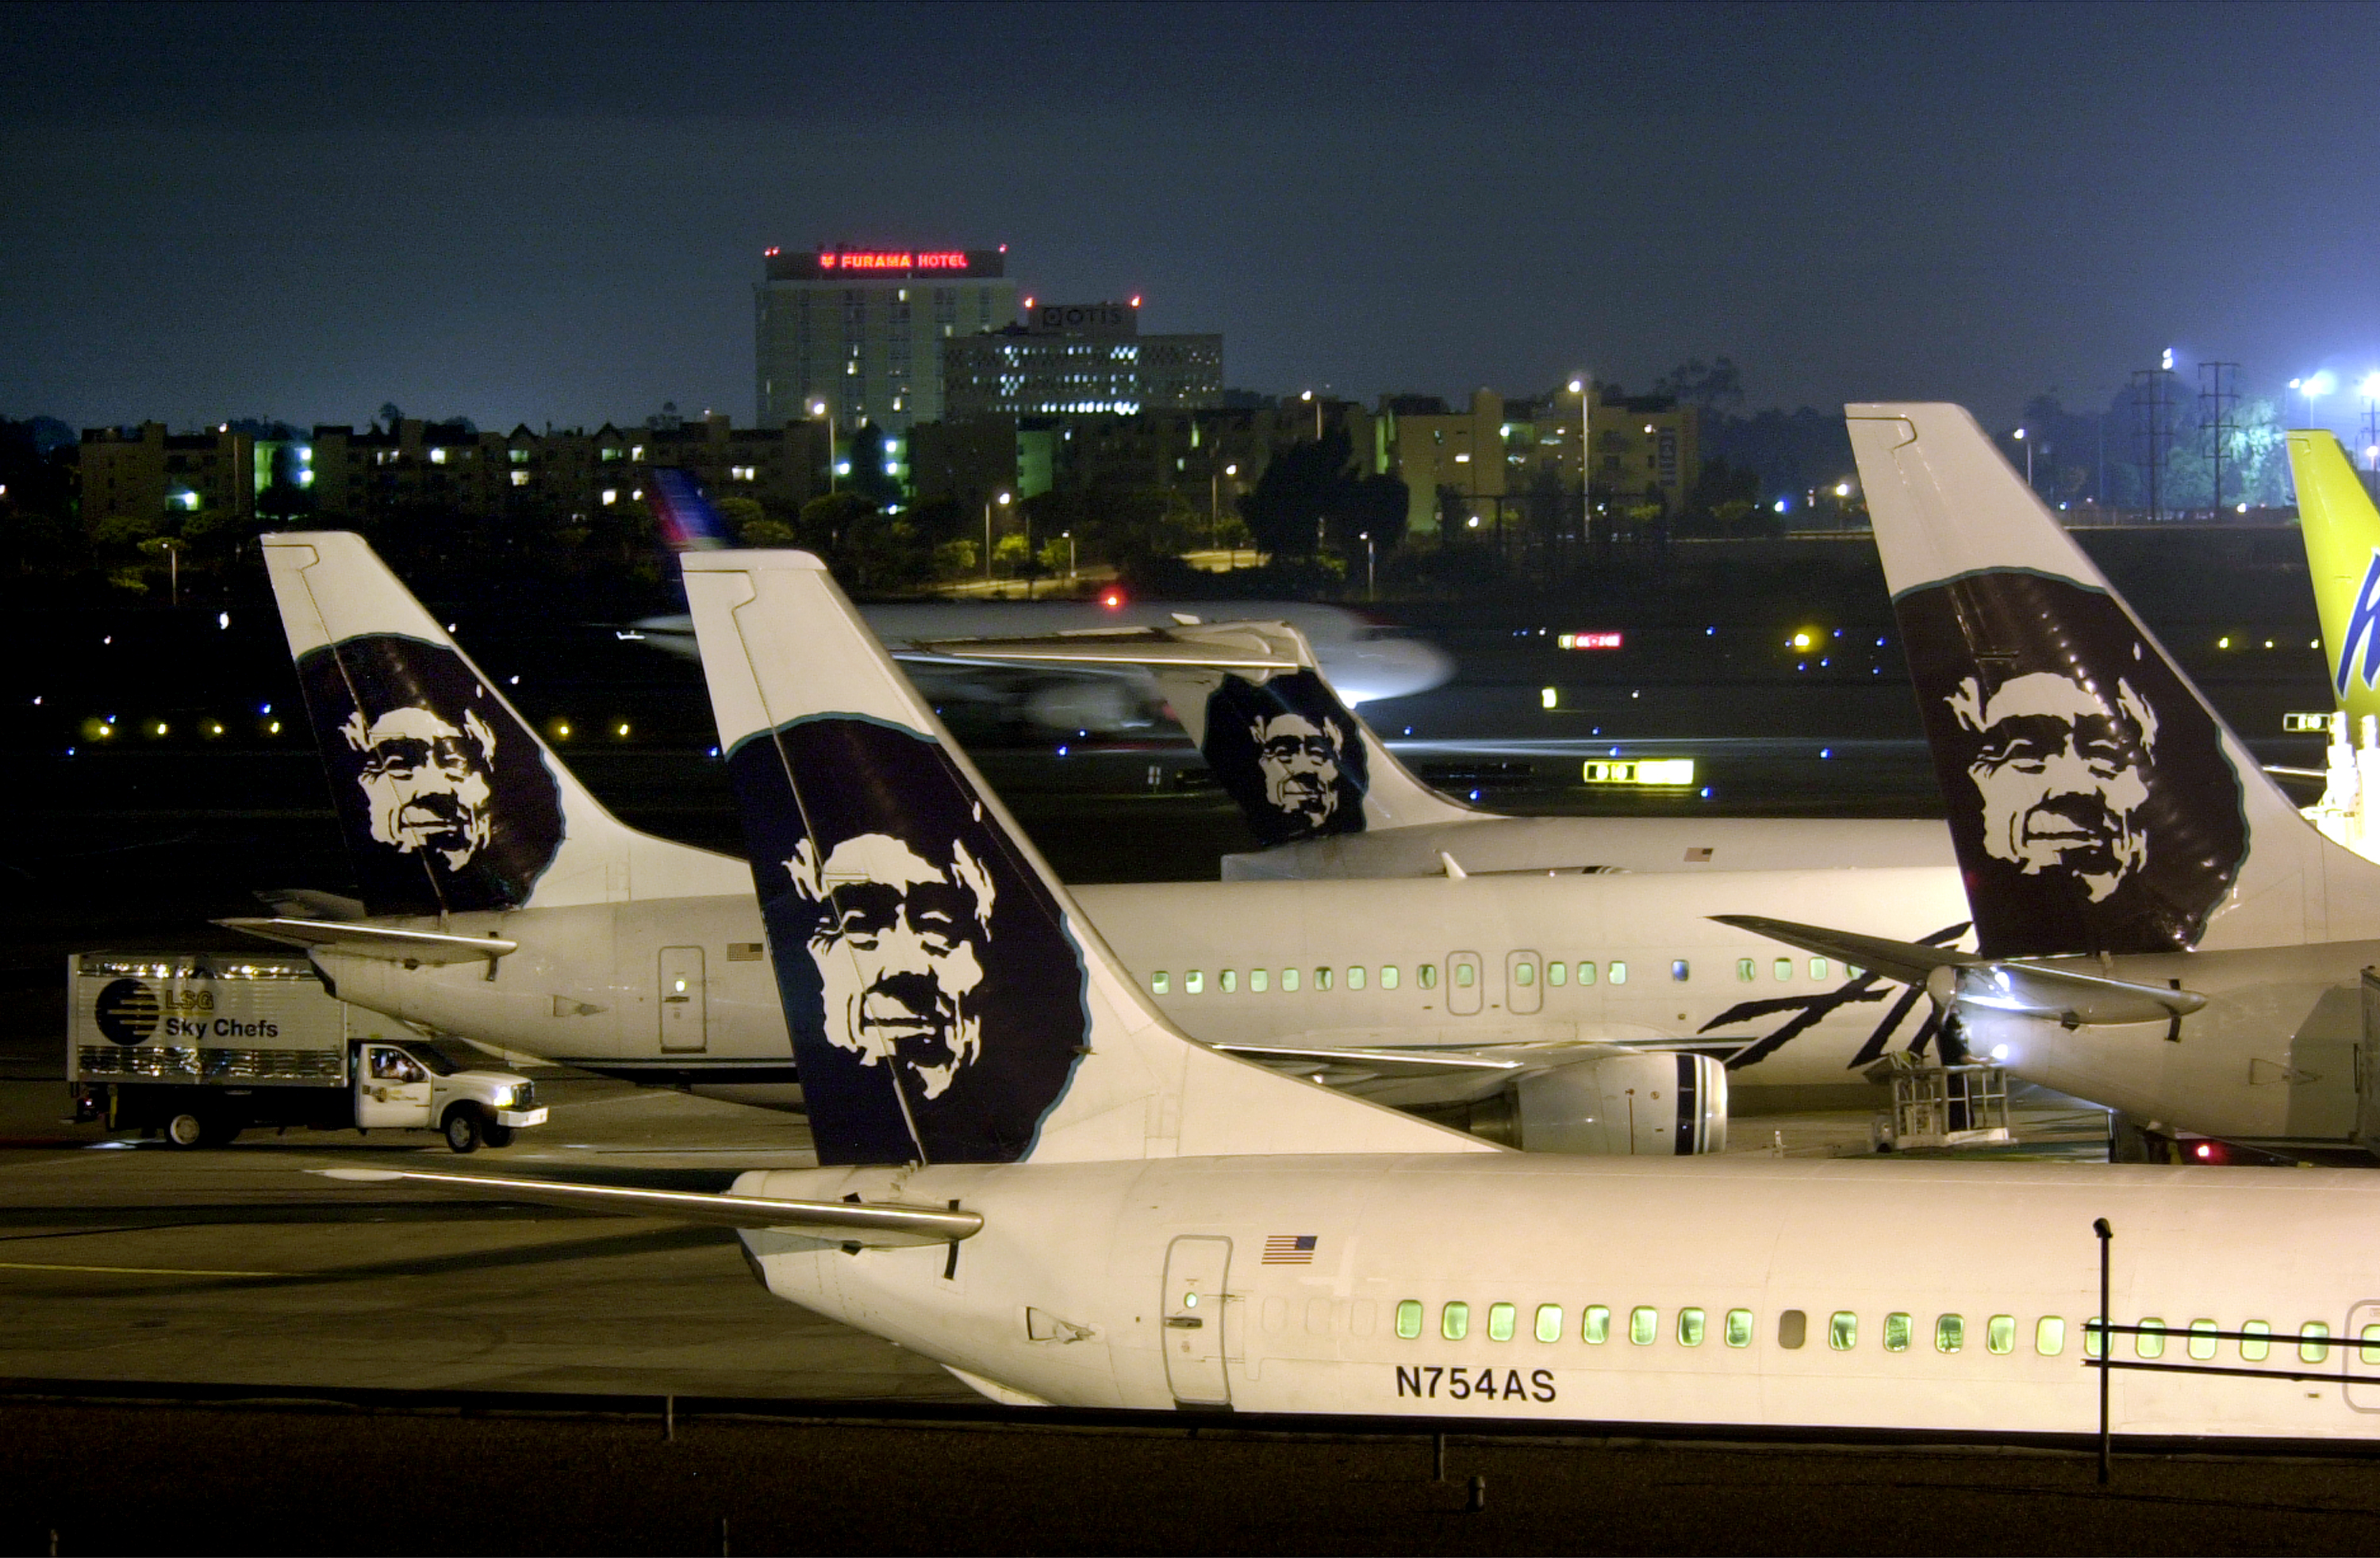 Alaska Airlines jets are parked at their terminal at Los Angeles International Airport. (Photo by David McNew/Getty Images)